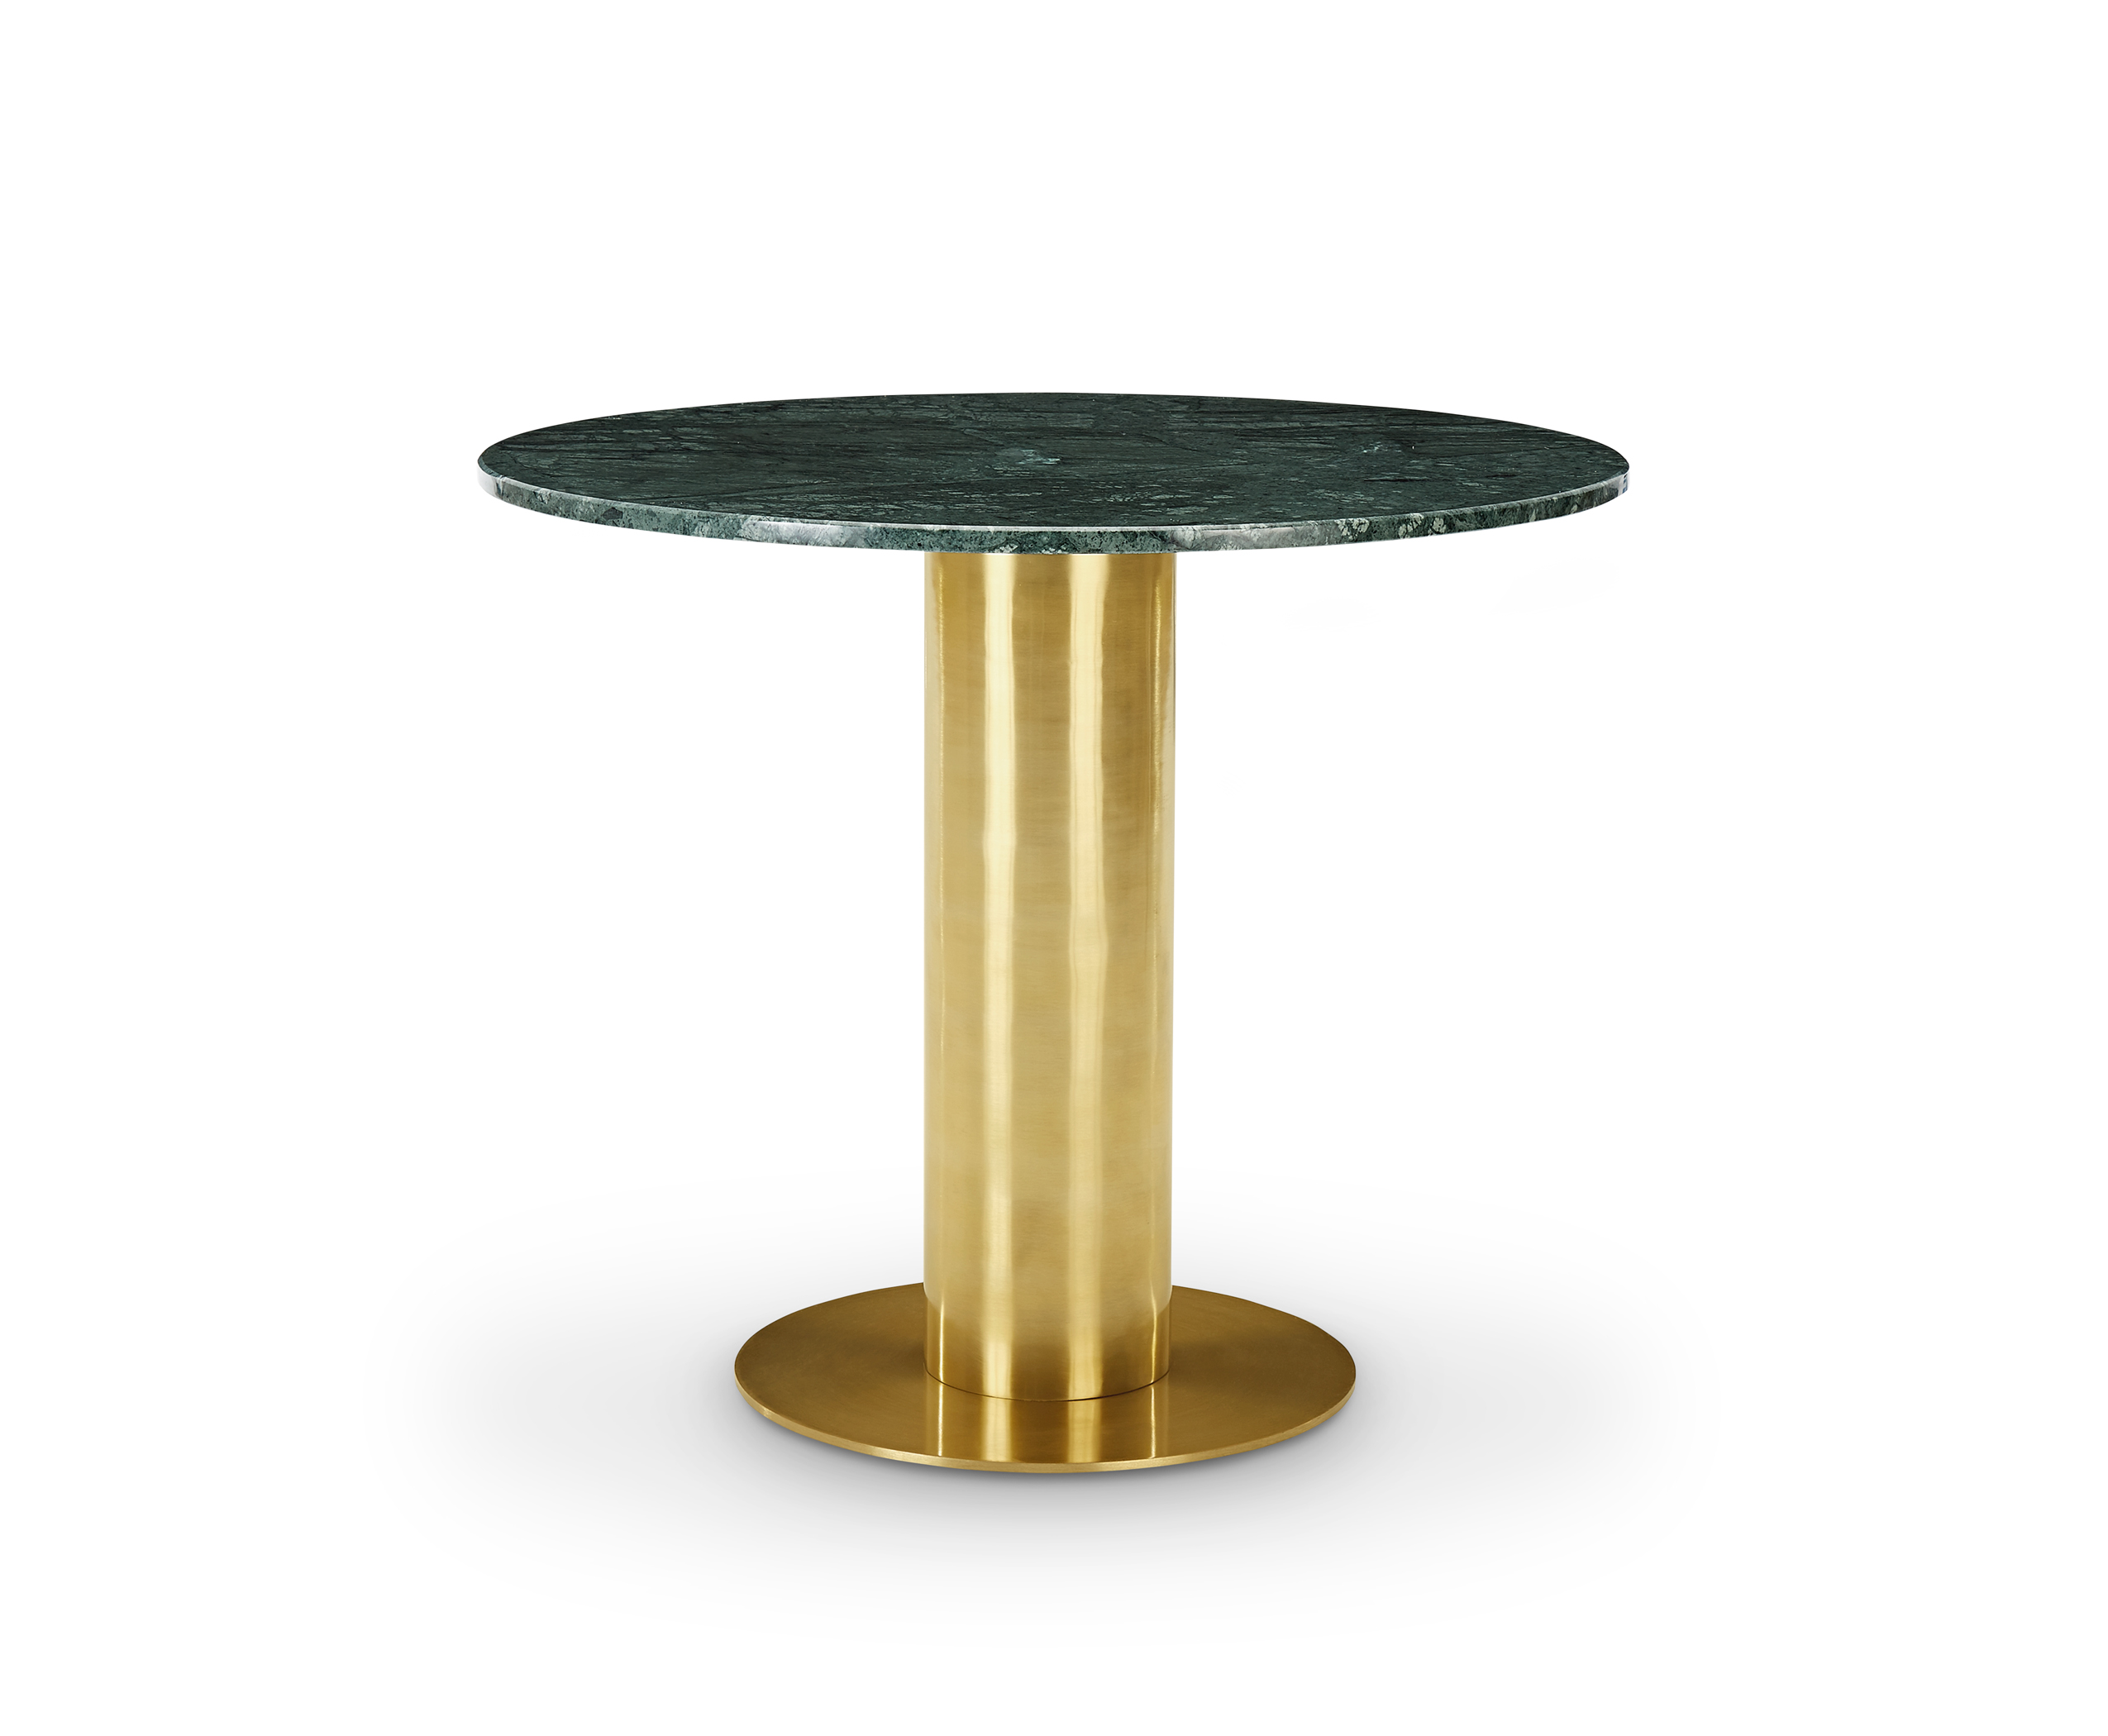 Tables Tom Dixon : TubeBasewith900GreenMarbleTopMain from www.tomdixon.net size 2550 x 2100 jpeg 784kB